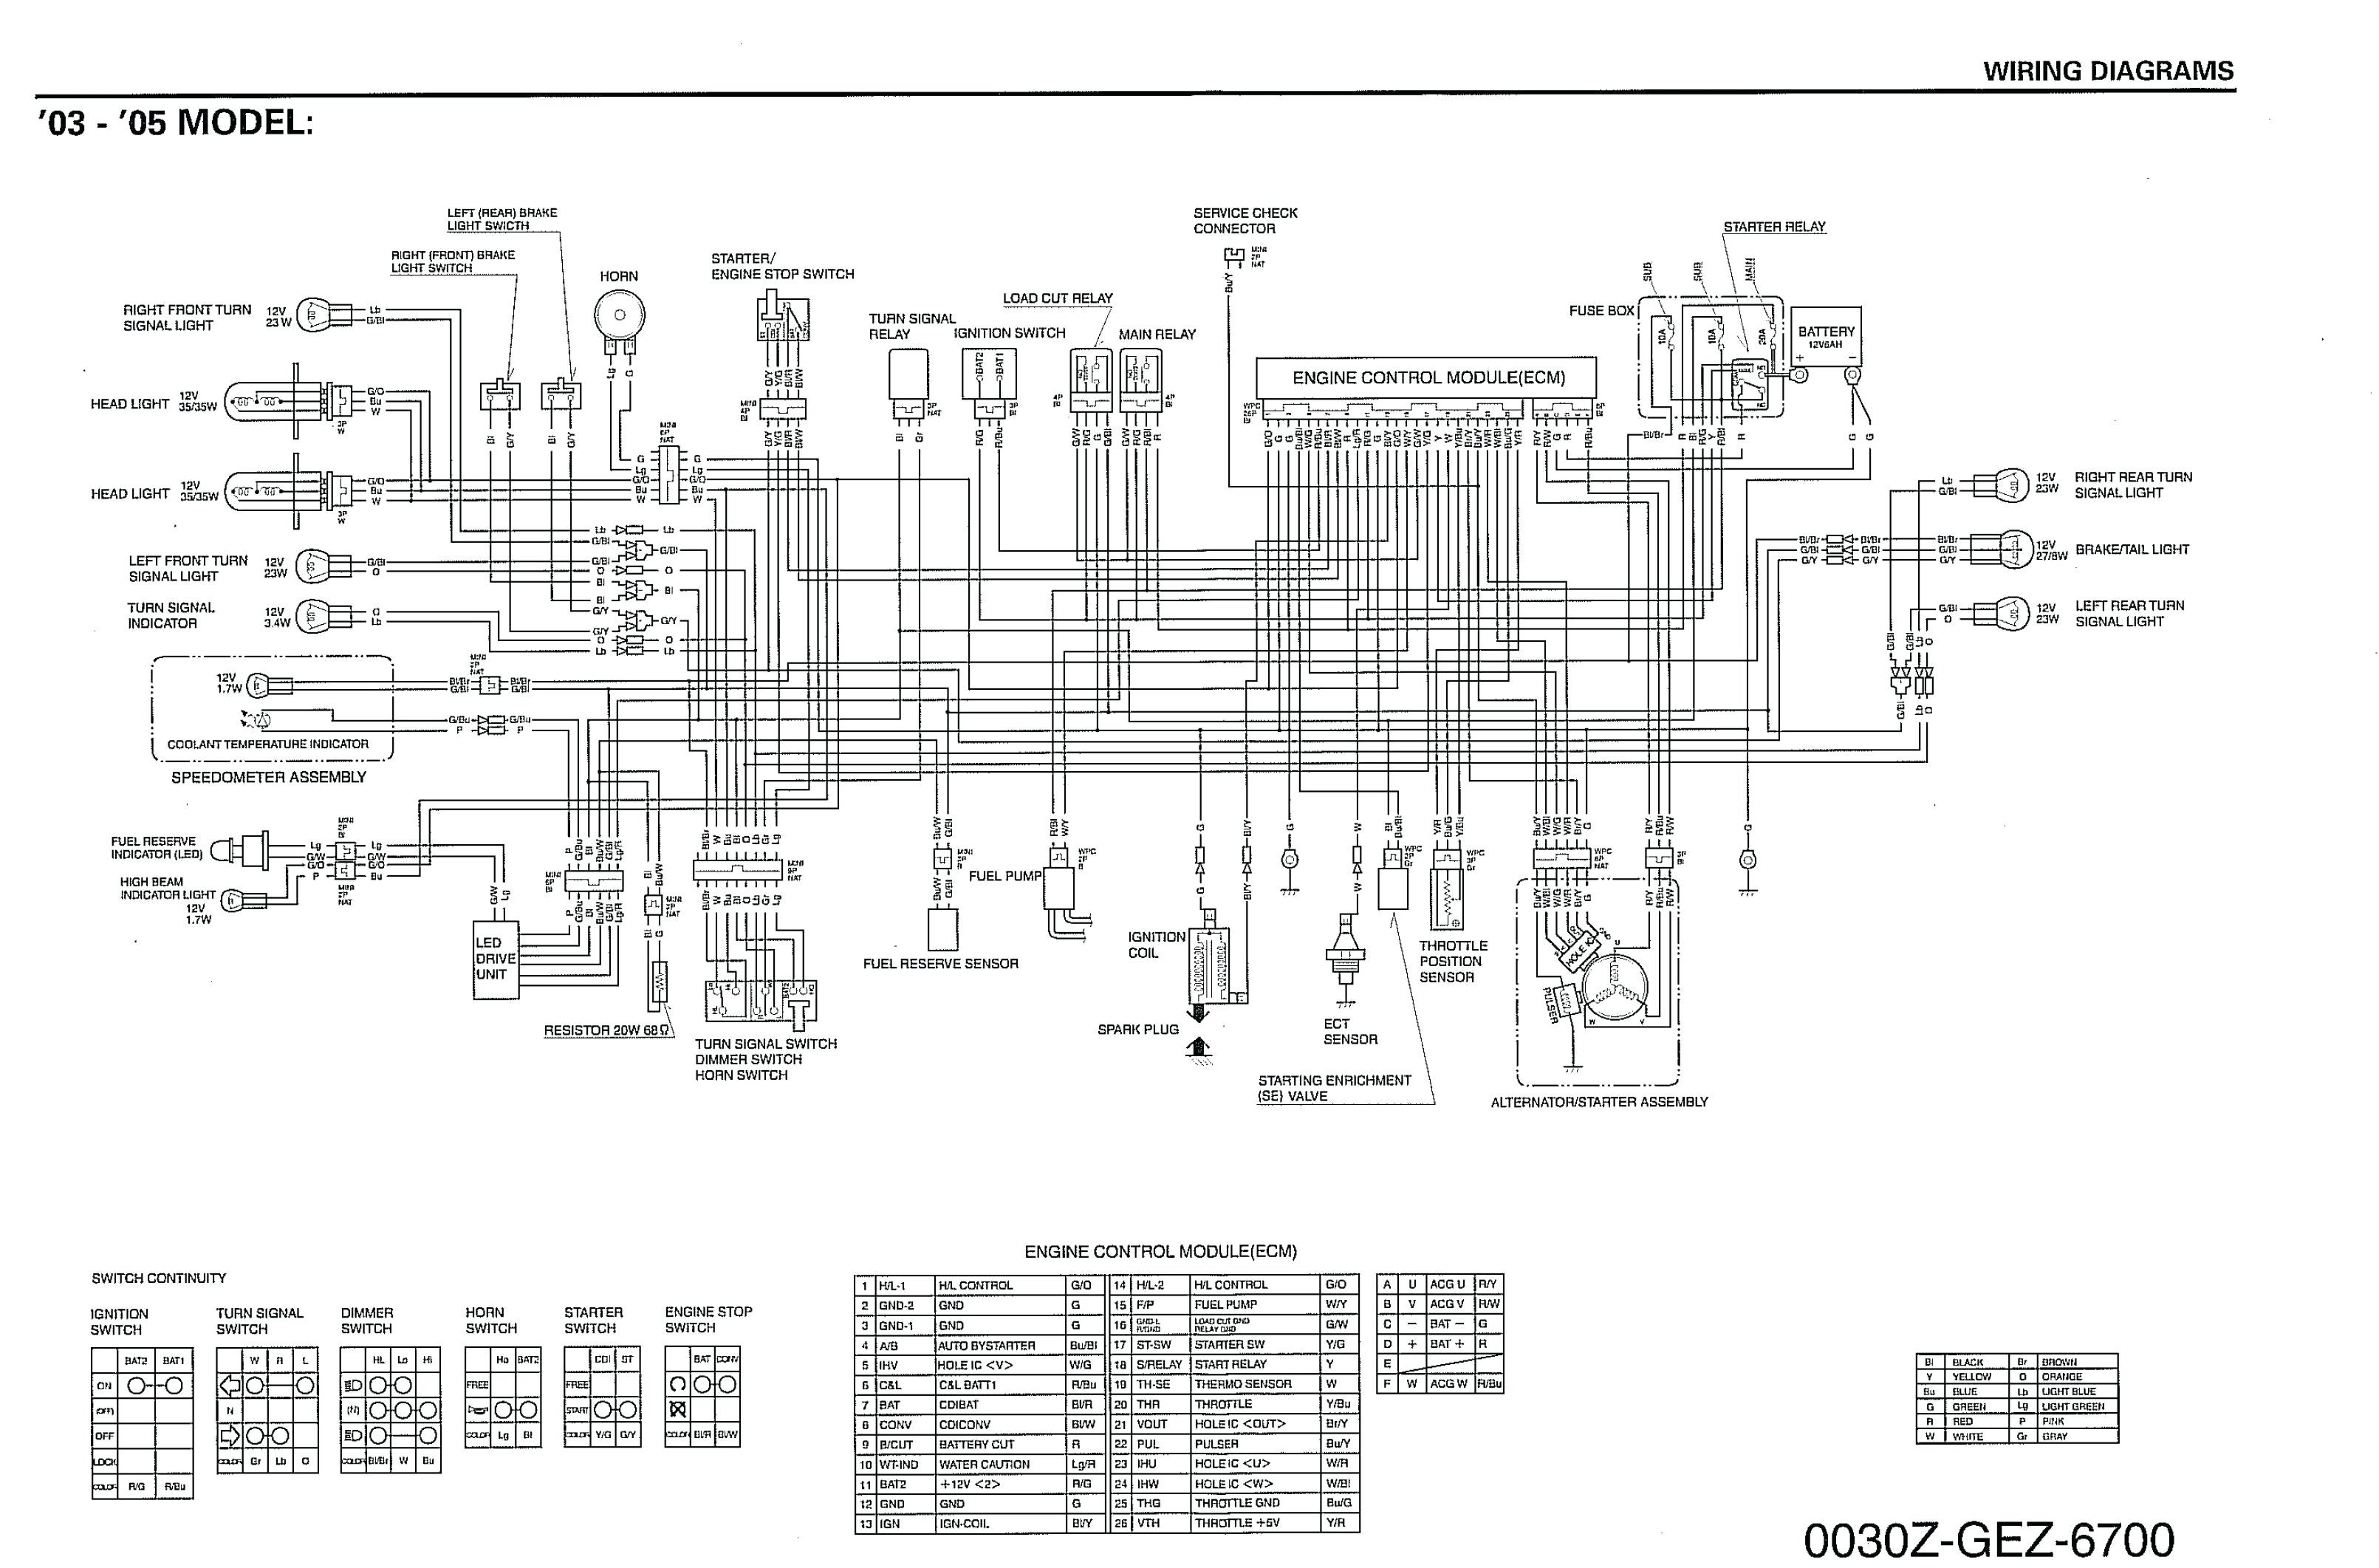 Subaru Legacy Engine Diagram My Wiring Diagram